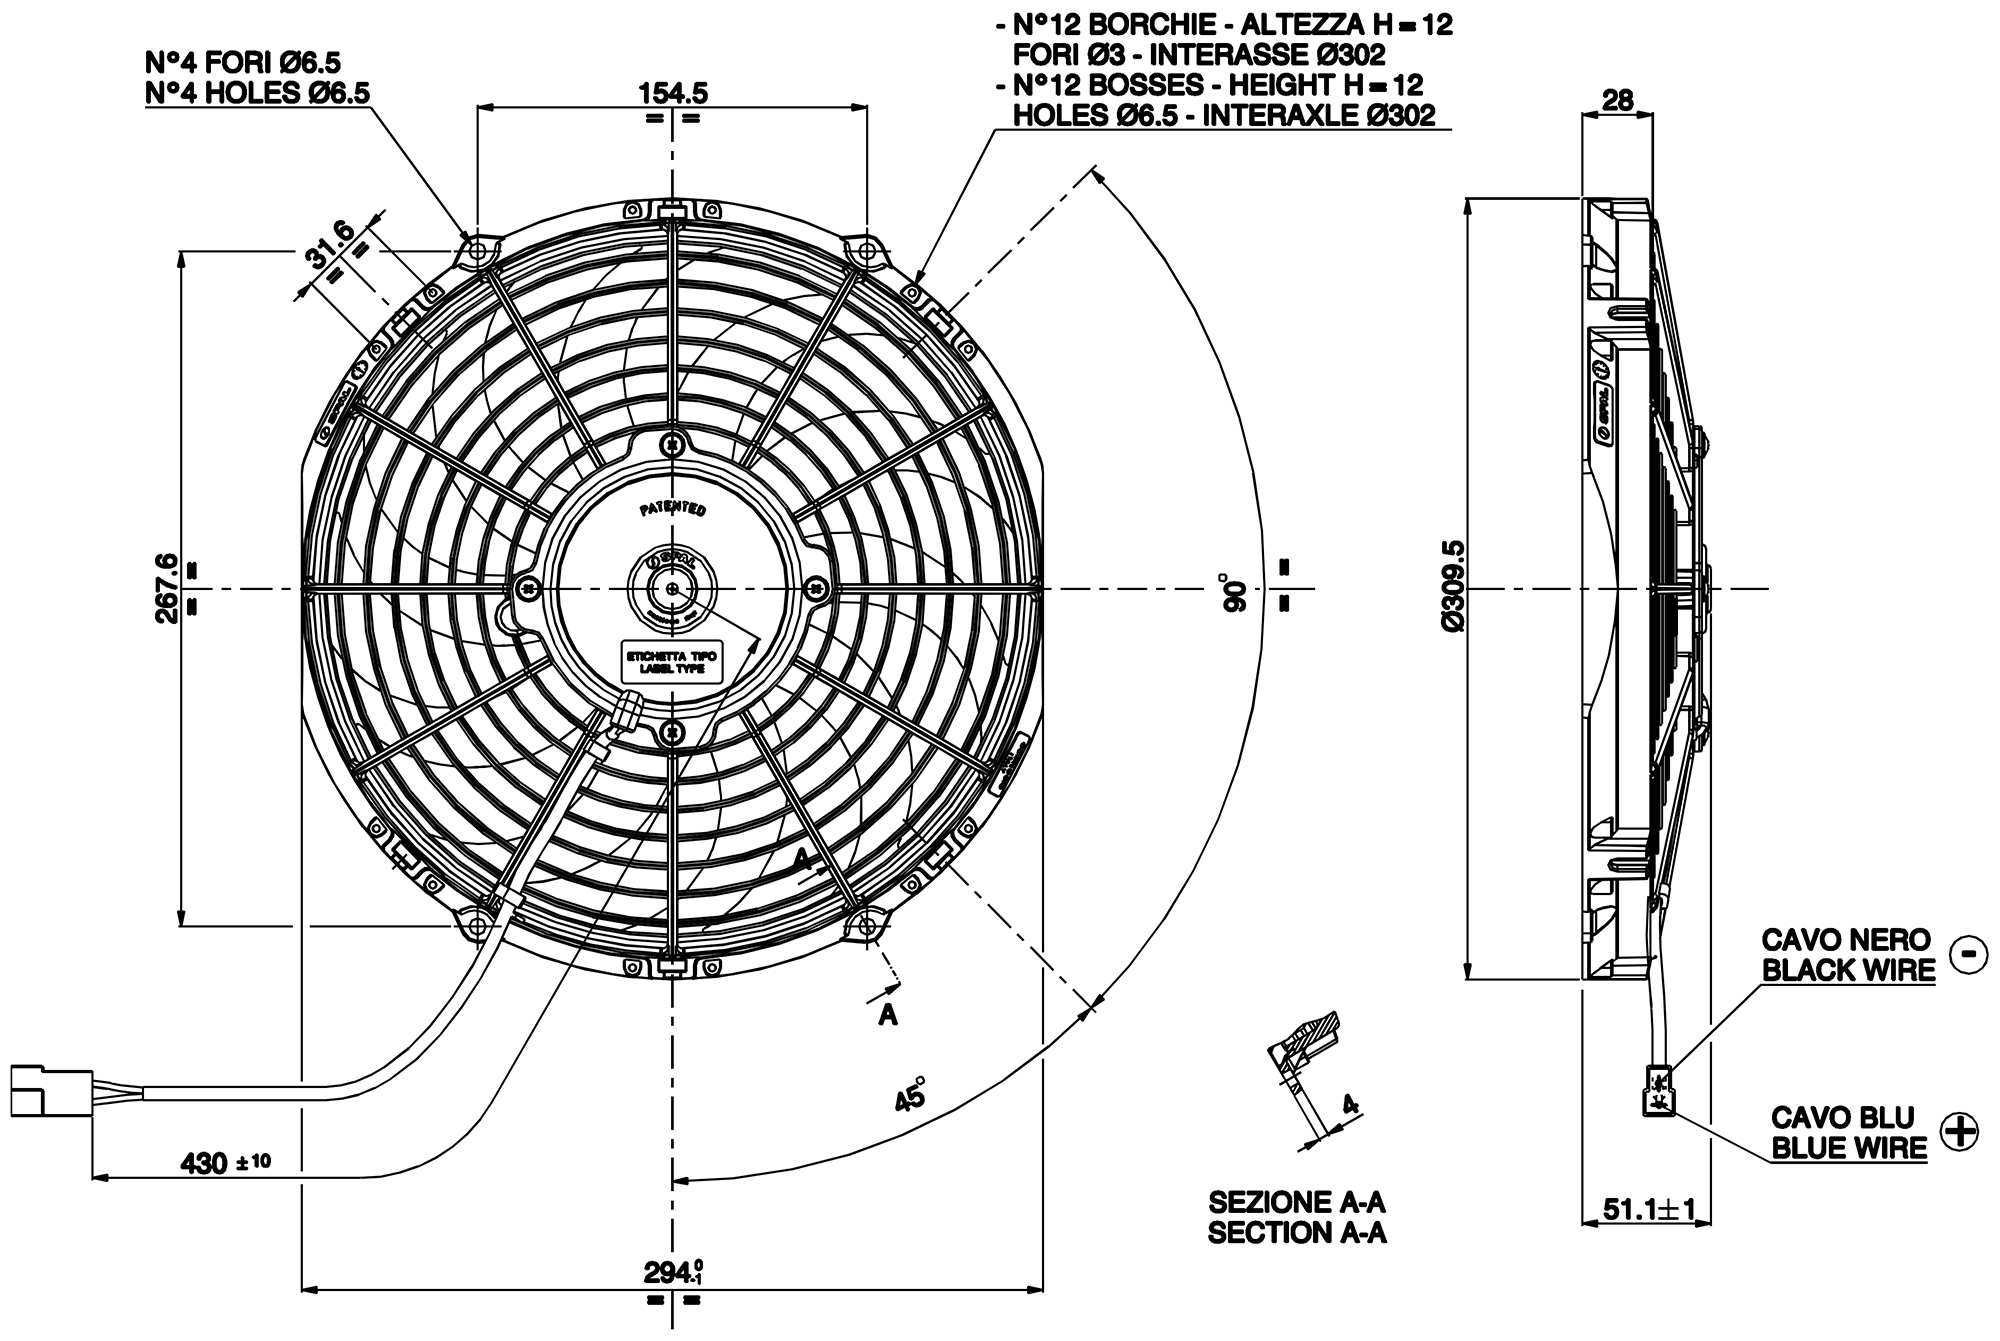 hight resolution of va09 bp8 c 54s dimensioned drawing